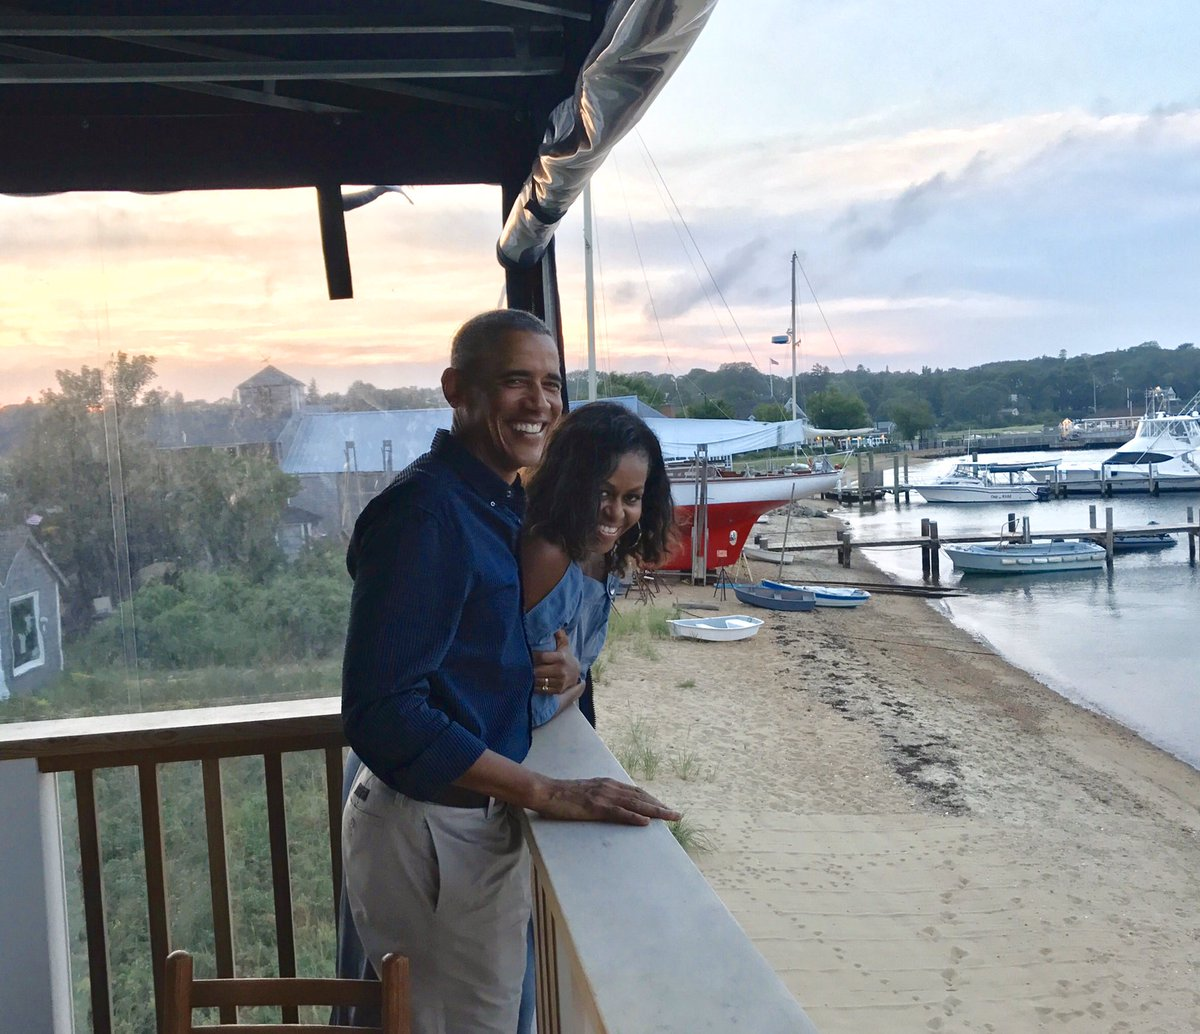 27 years ago, this guy promised me a life full of adventure. I'd say he's delivered. Here's to our next chapter of becoming empty nesters and discovering what's next—while still feeling the magic that brought us together all those years ago. Happy anniversary, Barack. https://t.co/ZKhvQGEo0B